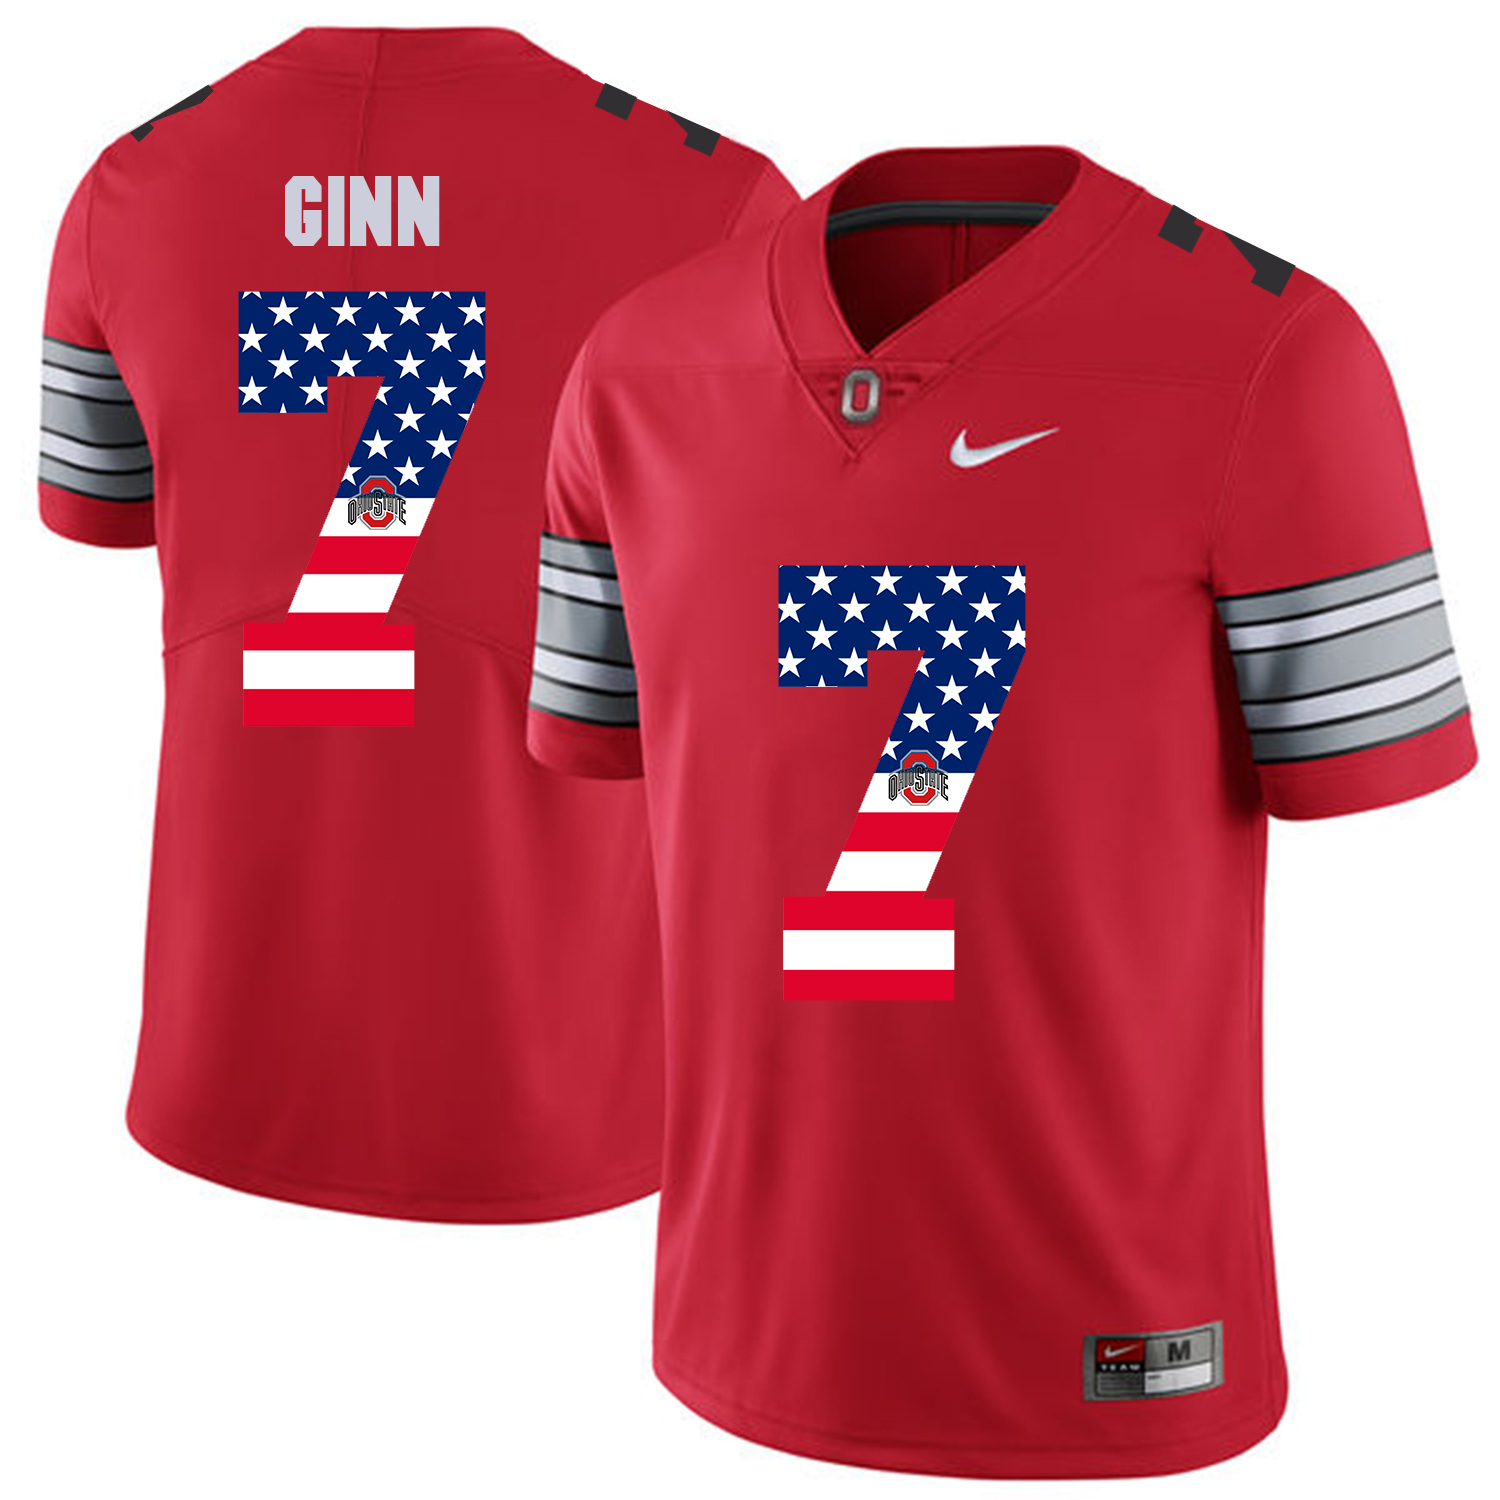 Men Ohio State 7 Ginn Red Flag Customized NCAA Jerseys